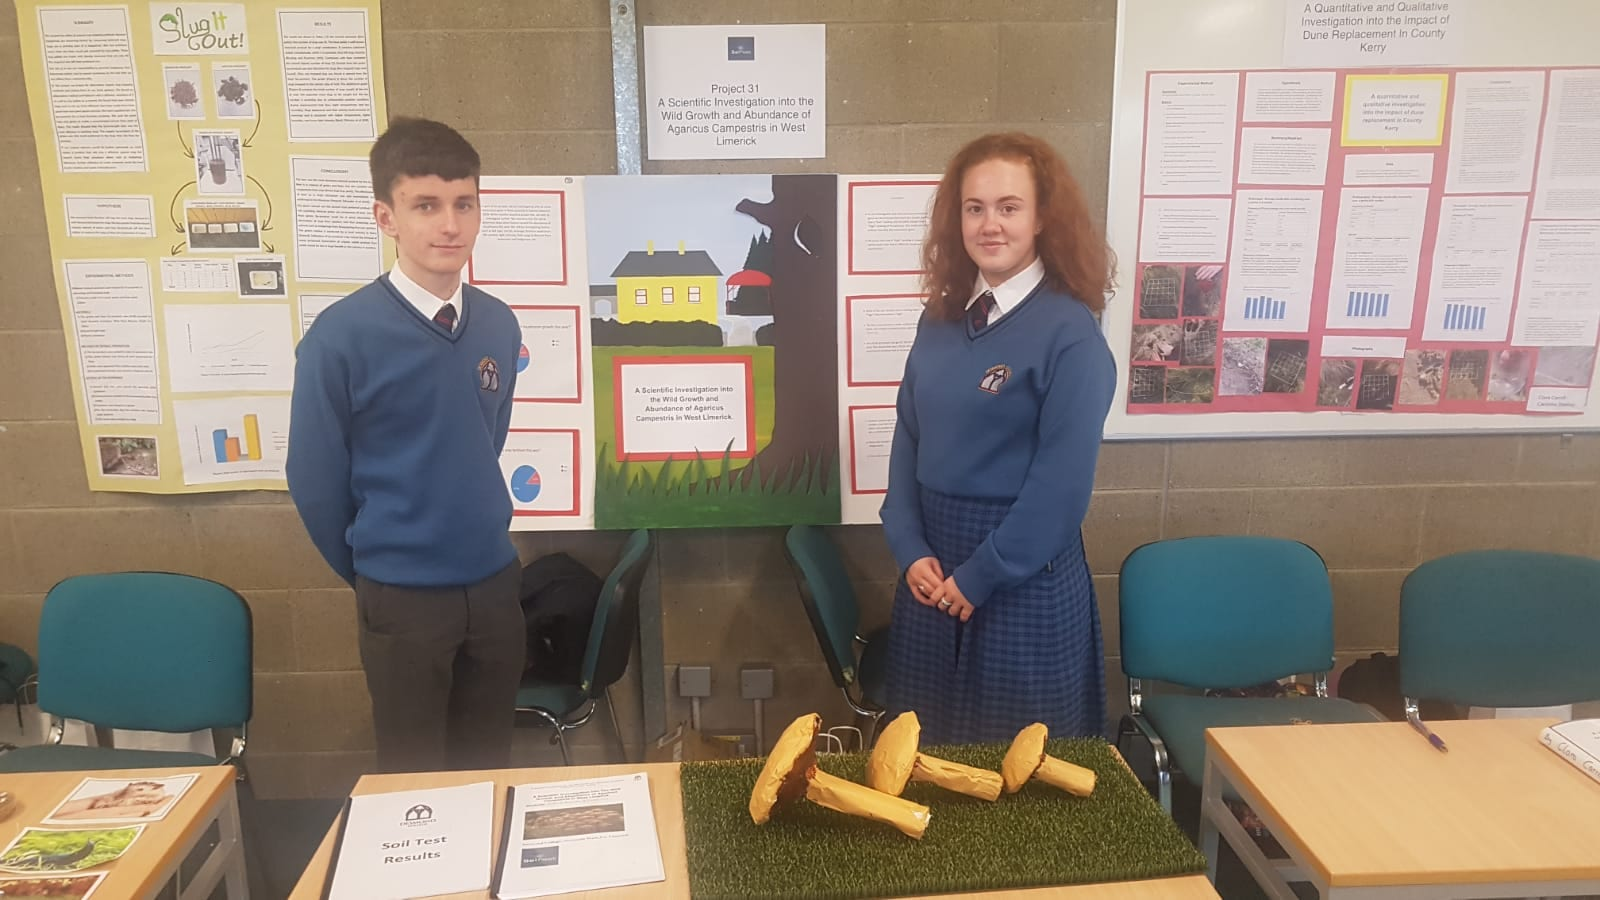 Conor Fox and Victoria Brouder carried out 'A Scientific Investigation into the wild growth and abundance of agaricus campestris in West Limerick'